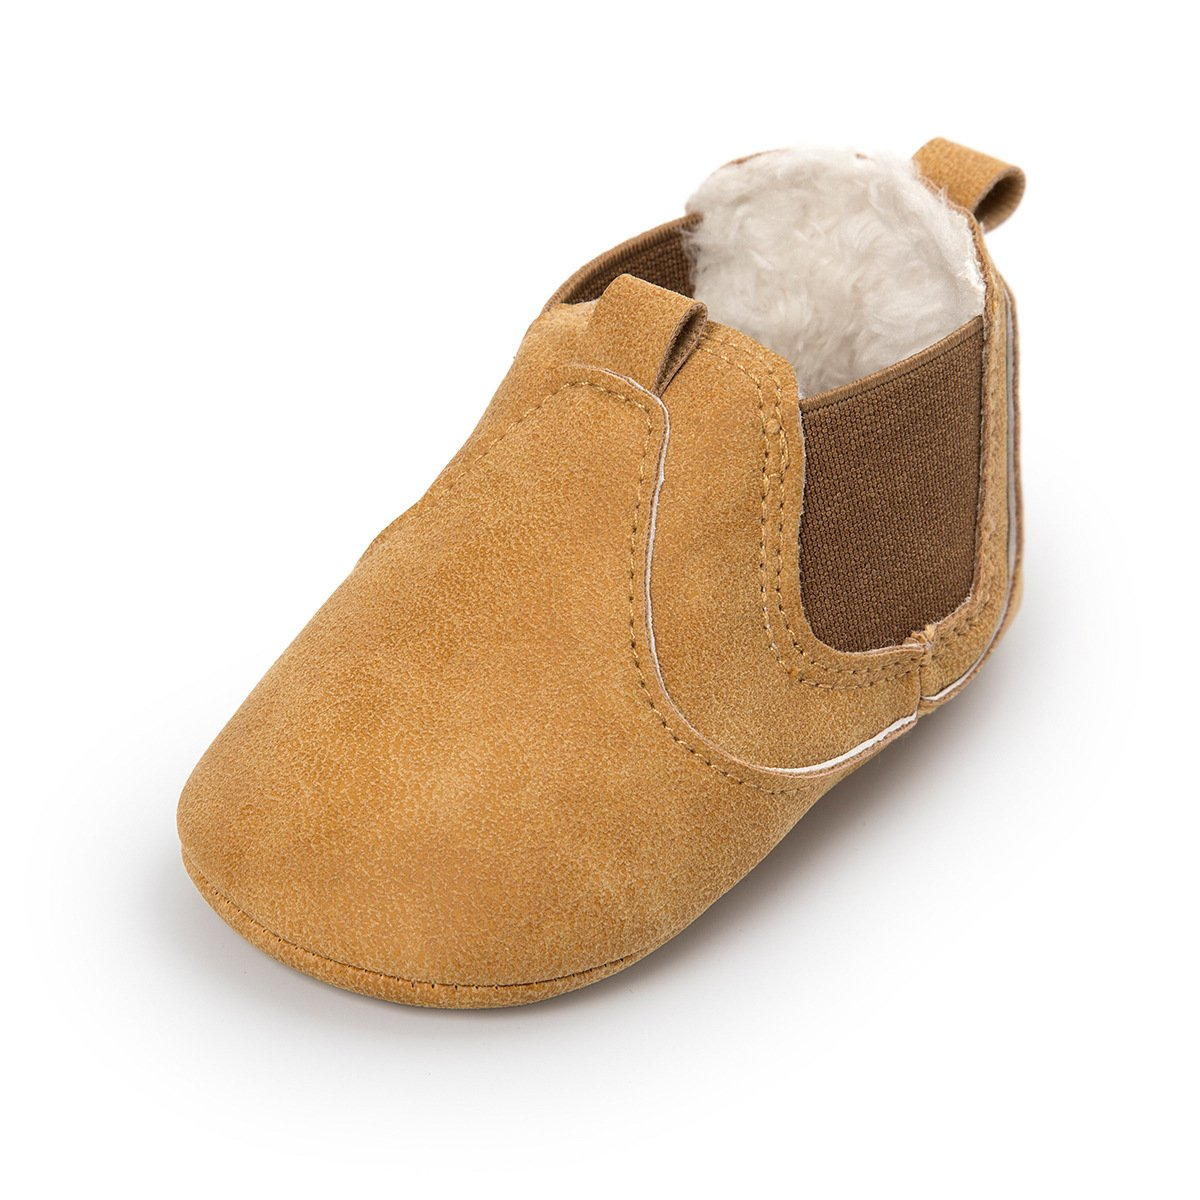 QGAKAGO Baby Girls or Boys Suede Cotton Booties Chelsea Boots Winter Warm Soft Sole Shoes (M: 4.73 inch(6~12 Months), Yellow)